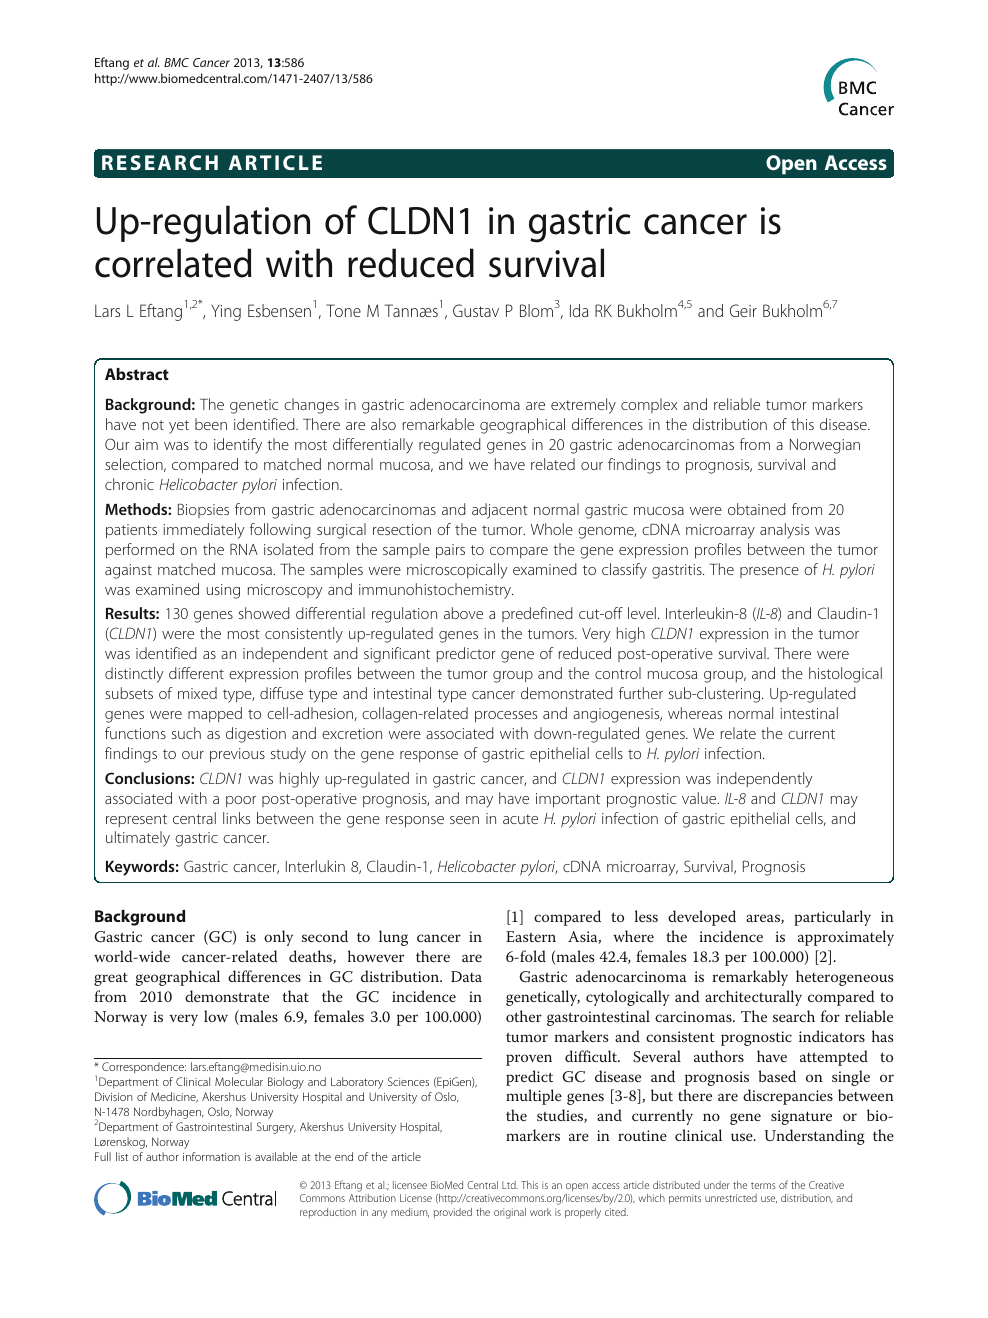 gastric cancer article)